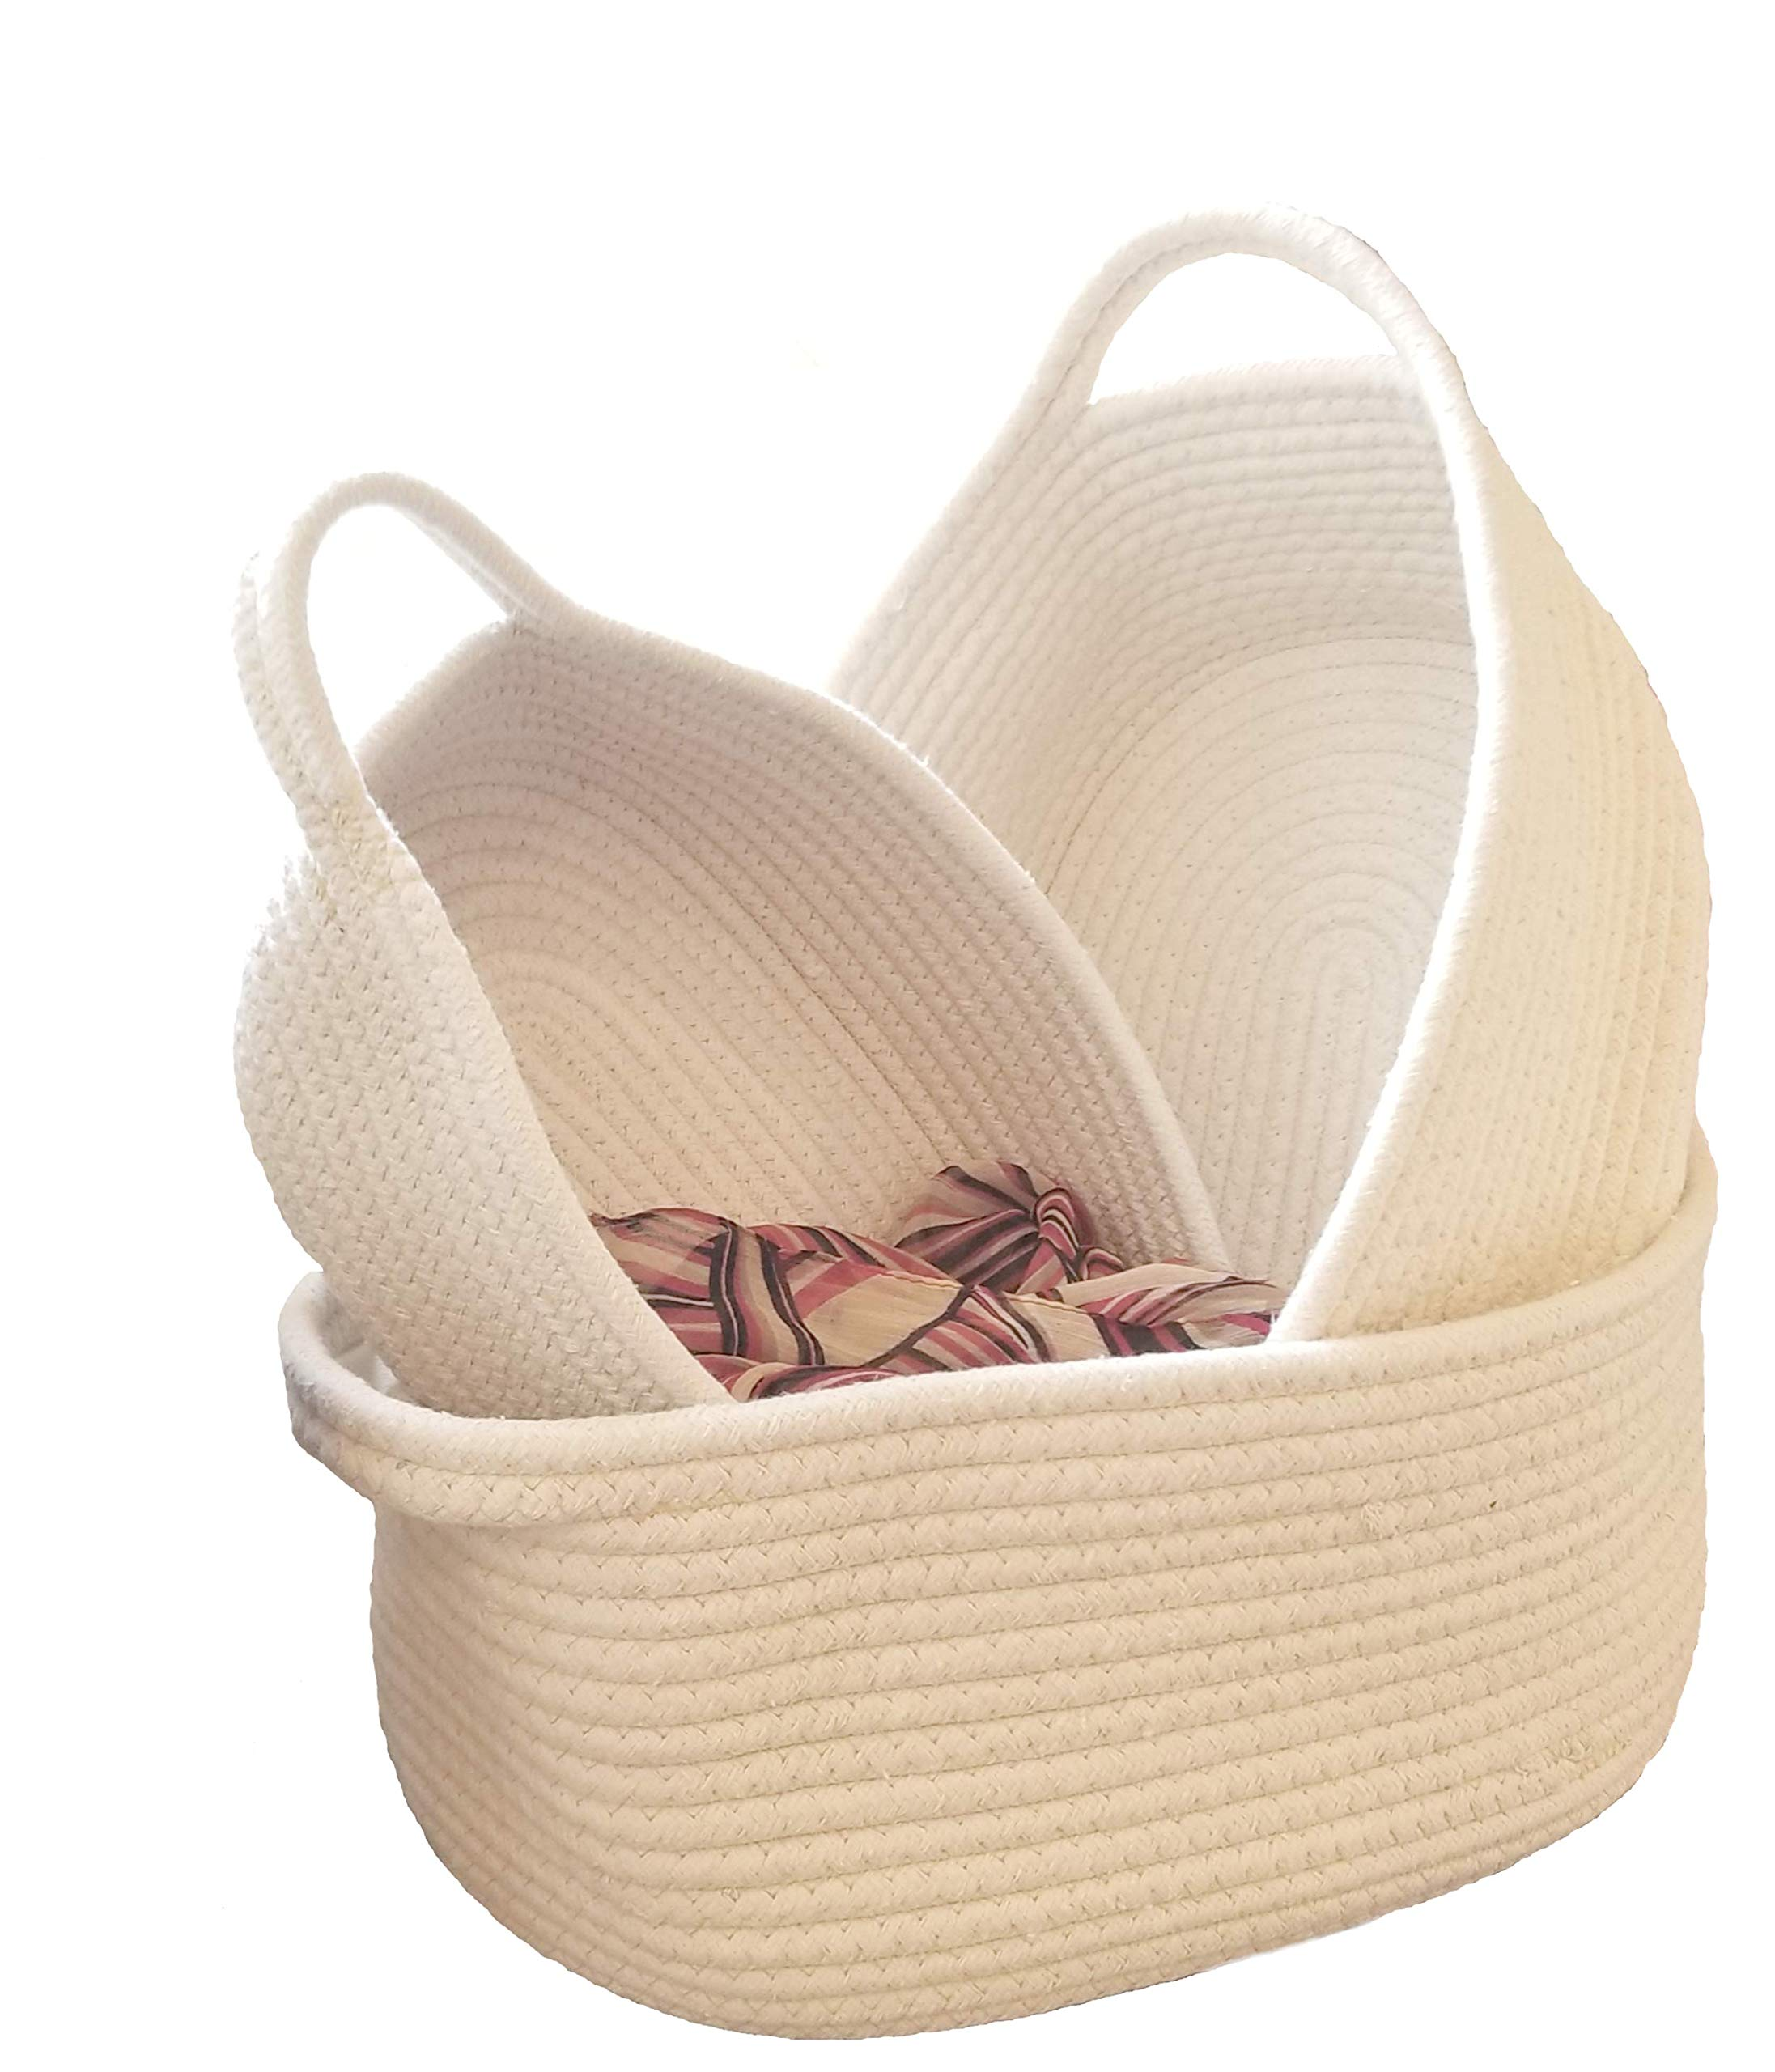 REM Concepts Woven Baskets, Cotton Rope Organizers and Storage Baskets with Handles - Set of 3 in S-M-L Sizes - Tidy Up Any Area - Neutral Color - Fits Any Home Decor!